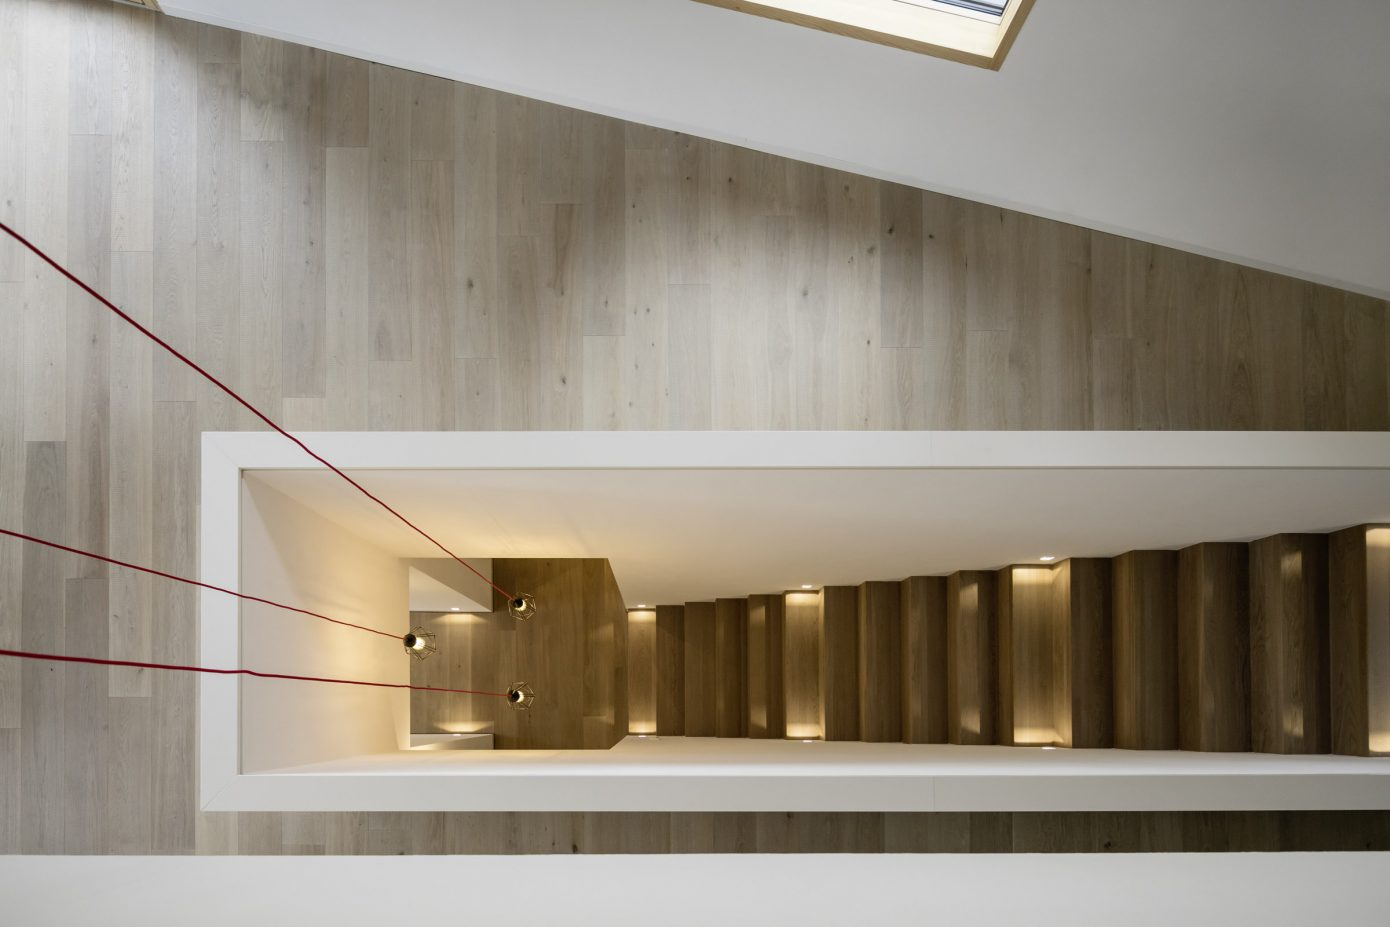 Cloud Cuckoo House by Uberraum Architects